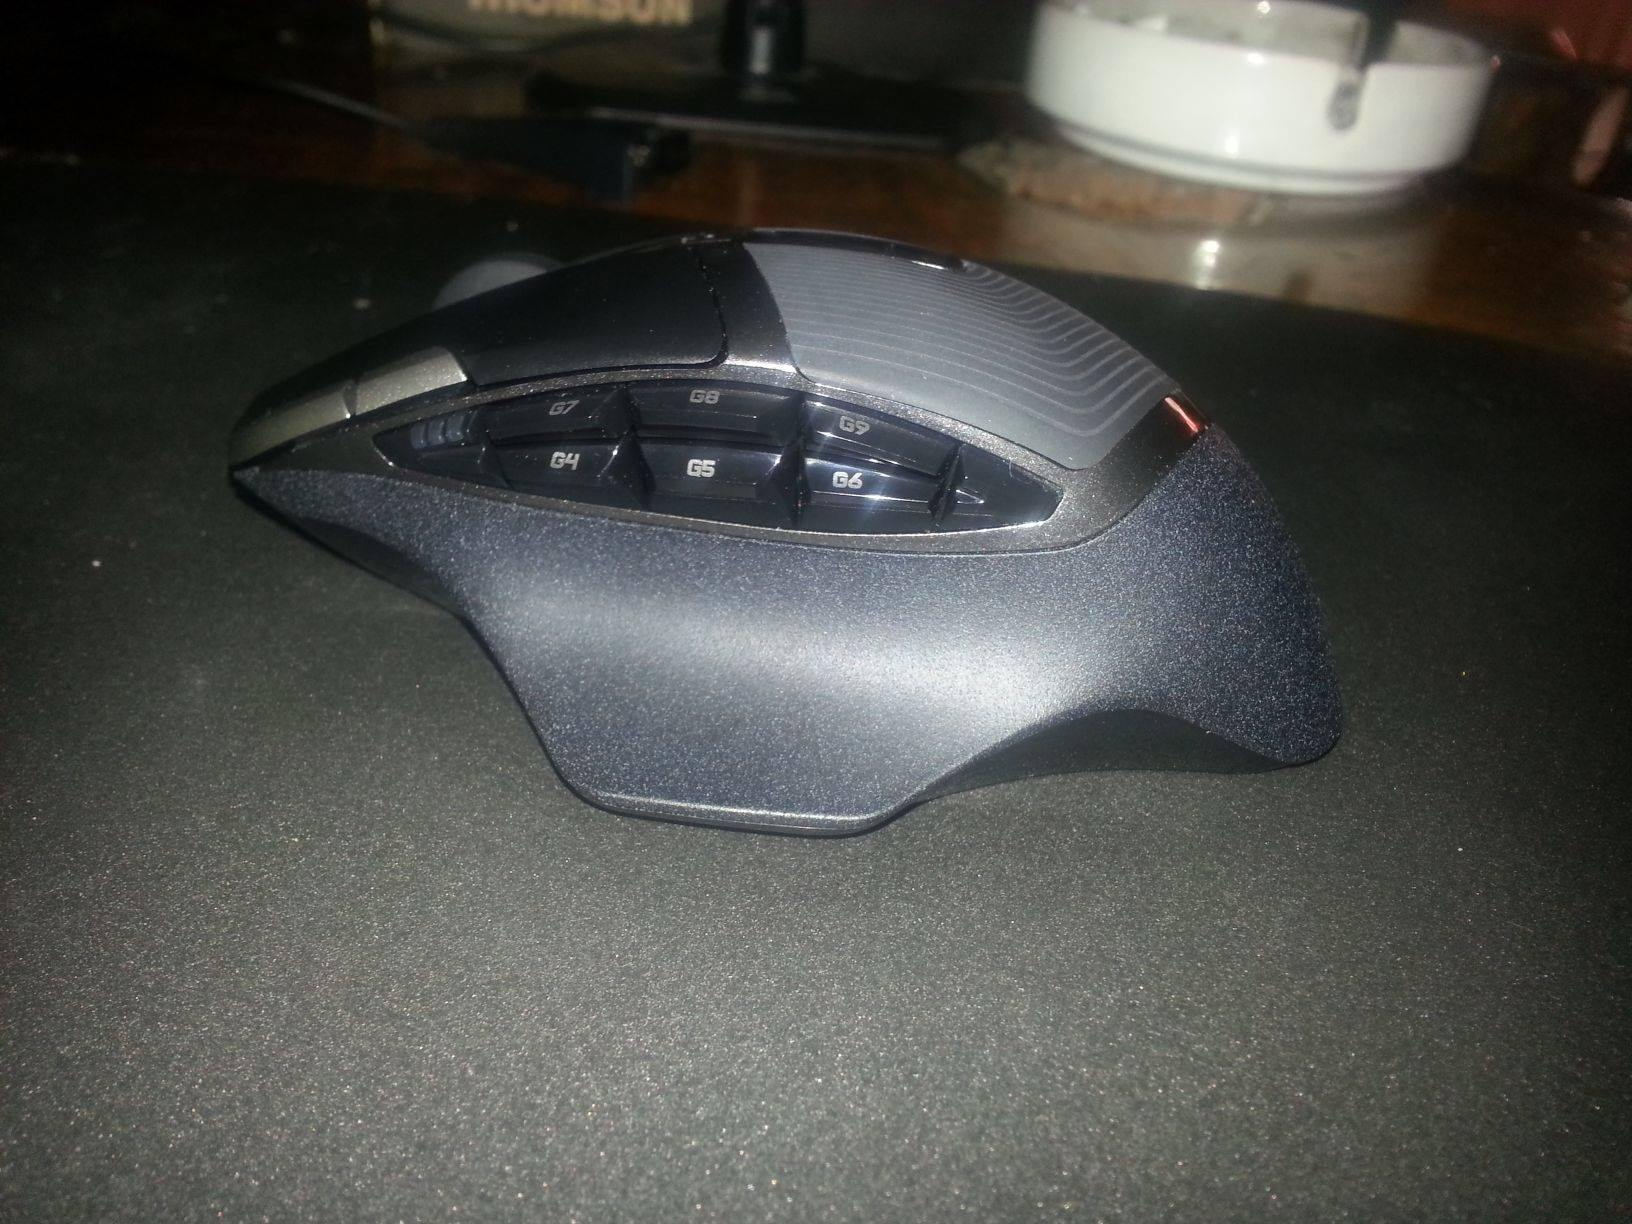 Logitech owners club! | Page 6 | TechPowerUp Forums